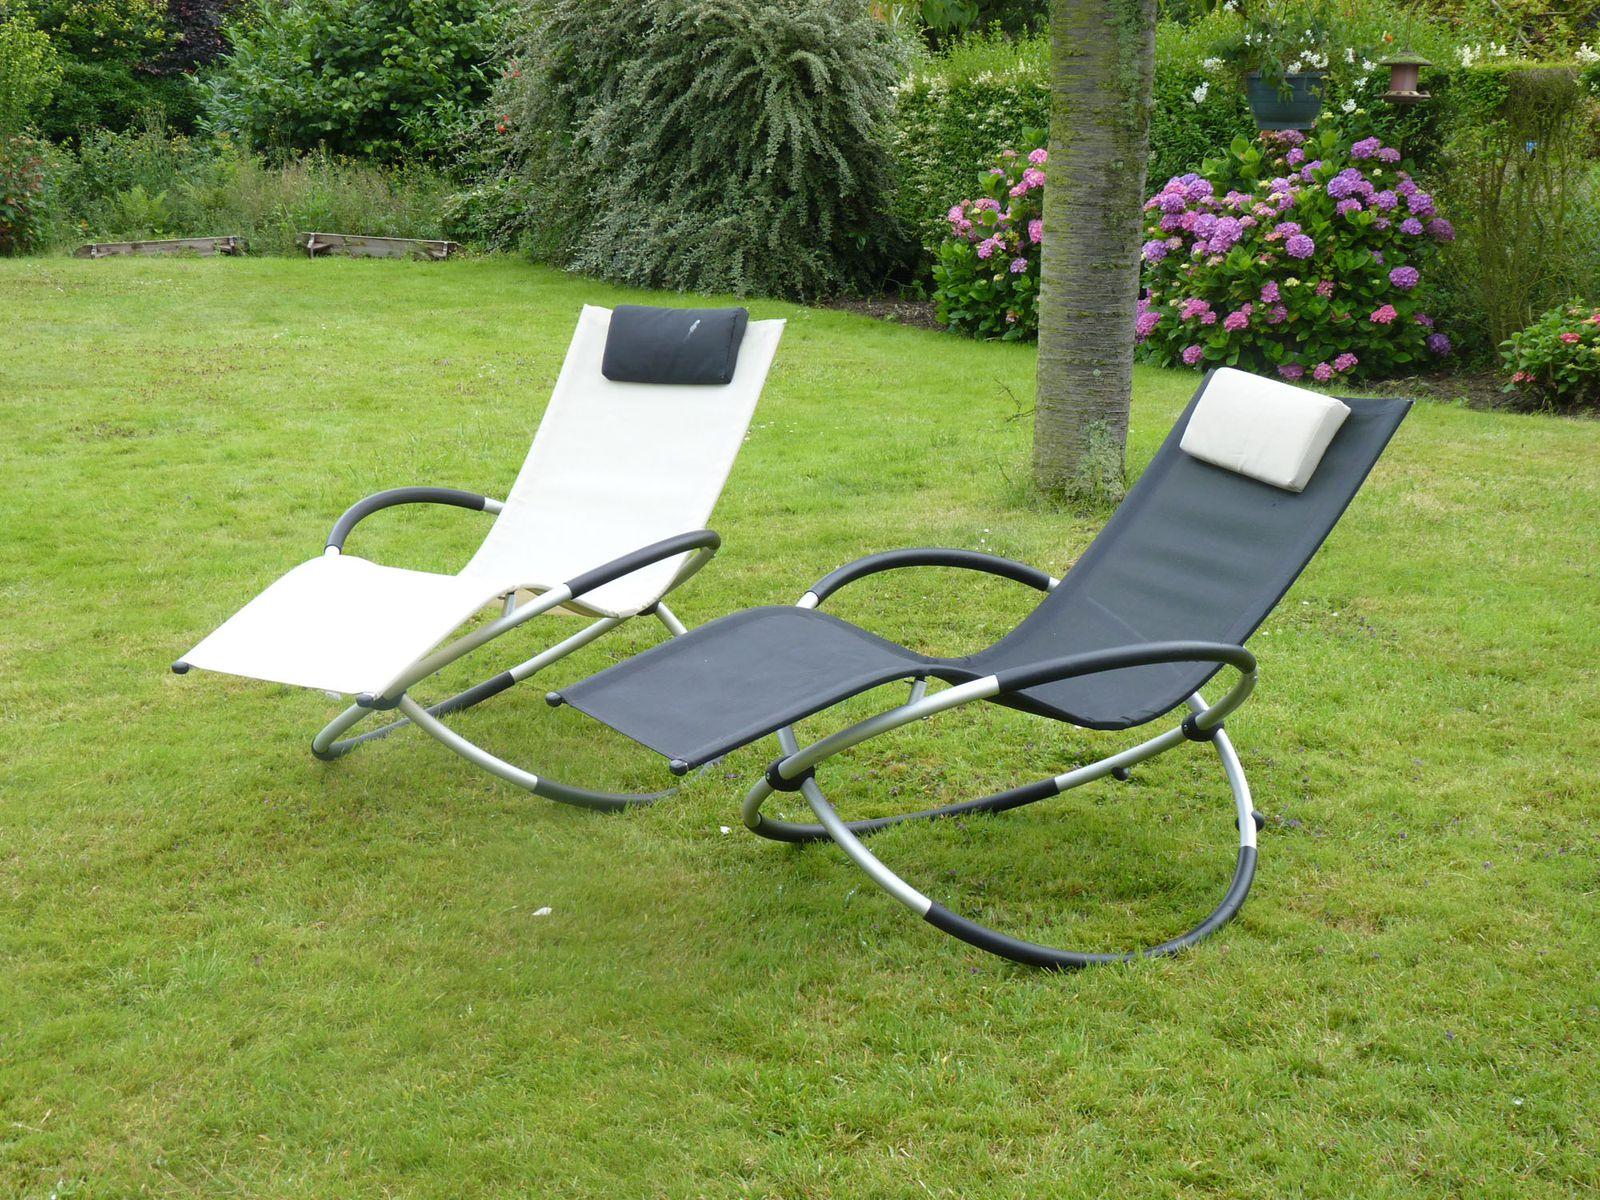 jardin fauteuil relax design confortable qu 39 un transat. Black Bedroom Furniture Sets. Home Design Ideas